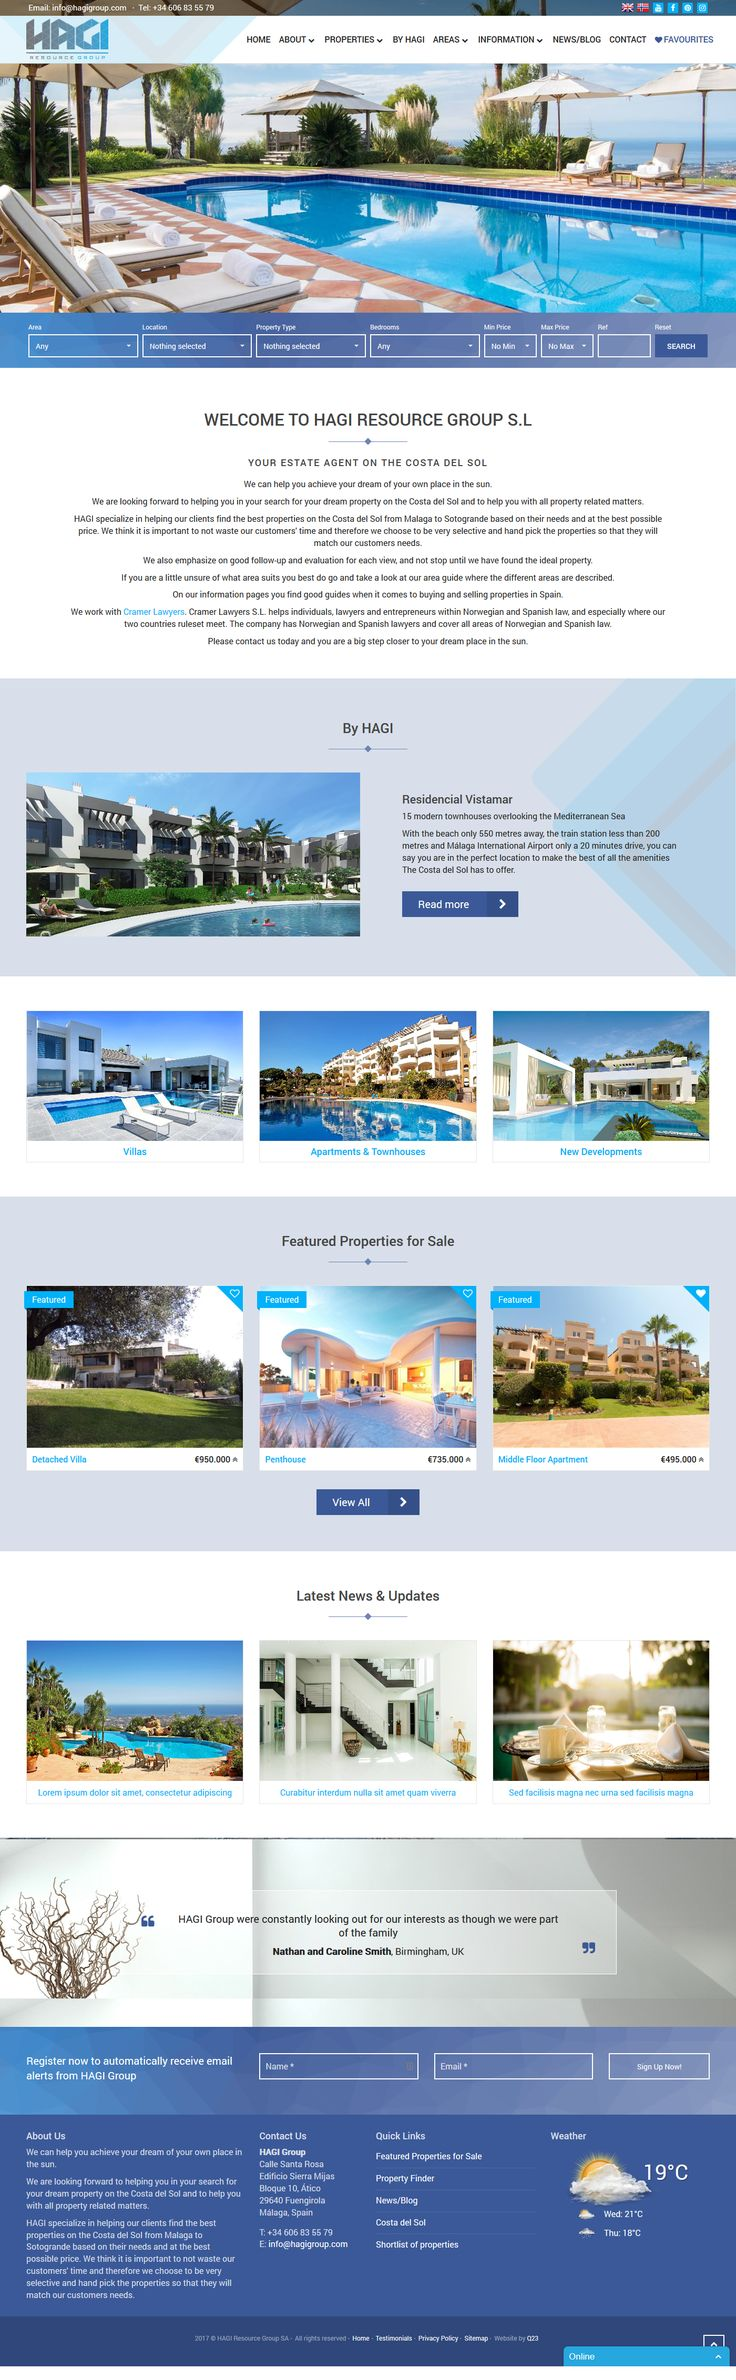 HAGI specialize in helping their clients find the best properties on the Costa del Sol from Malaga to Sotogrande based on their needs and at the best possible price. They think it is important to not waste our customers' time and therefore choose to be very selective and hand pick the properties so that they will match their customers needs. #ResalesOnline #qresXML #RealEstate